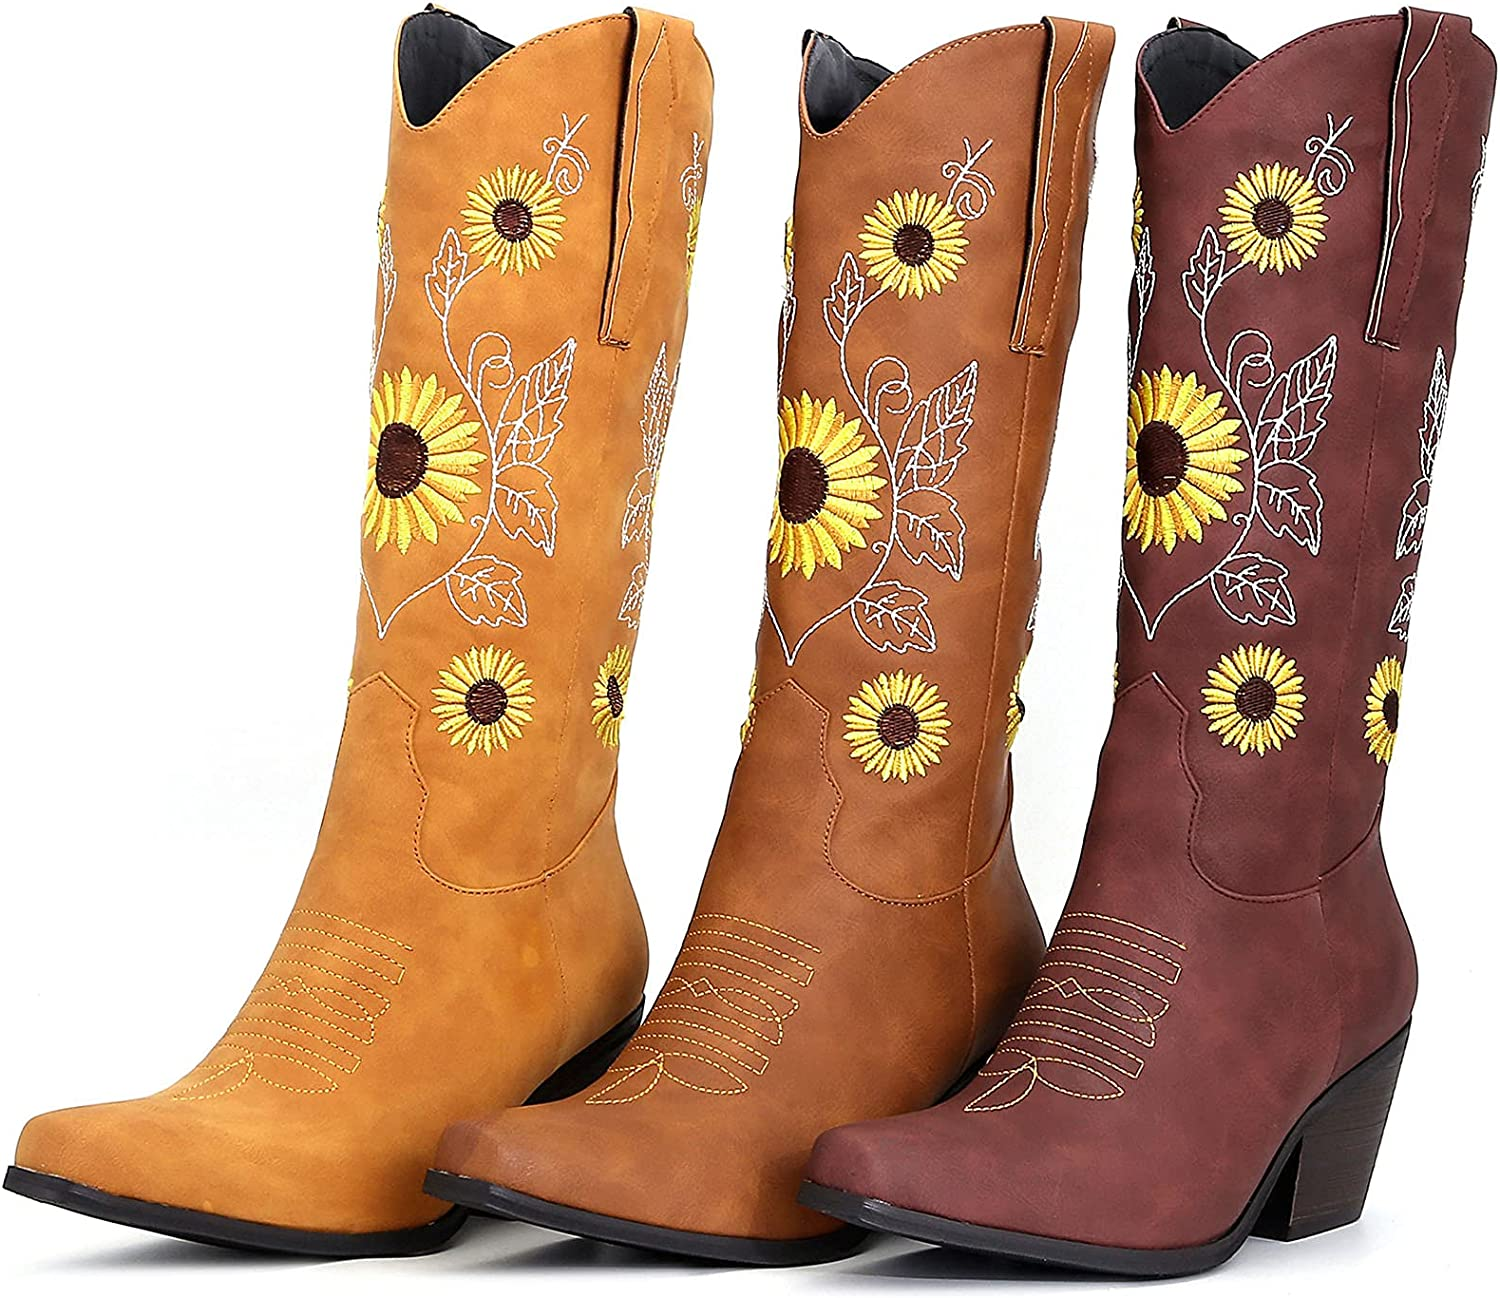 SaraIris Women's Western Boot Cowgirl Cowboy Boot Vintage Embroidered Knee High Boots Chunky High Heel Pointed Slip On Boots